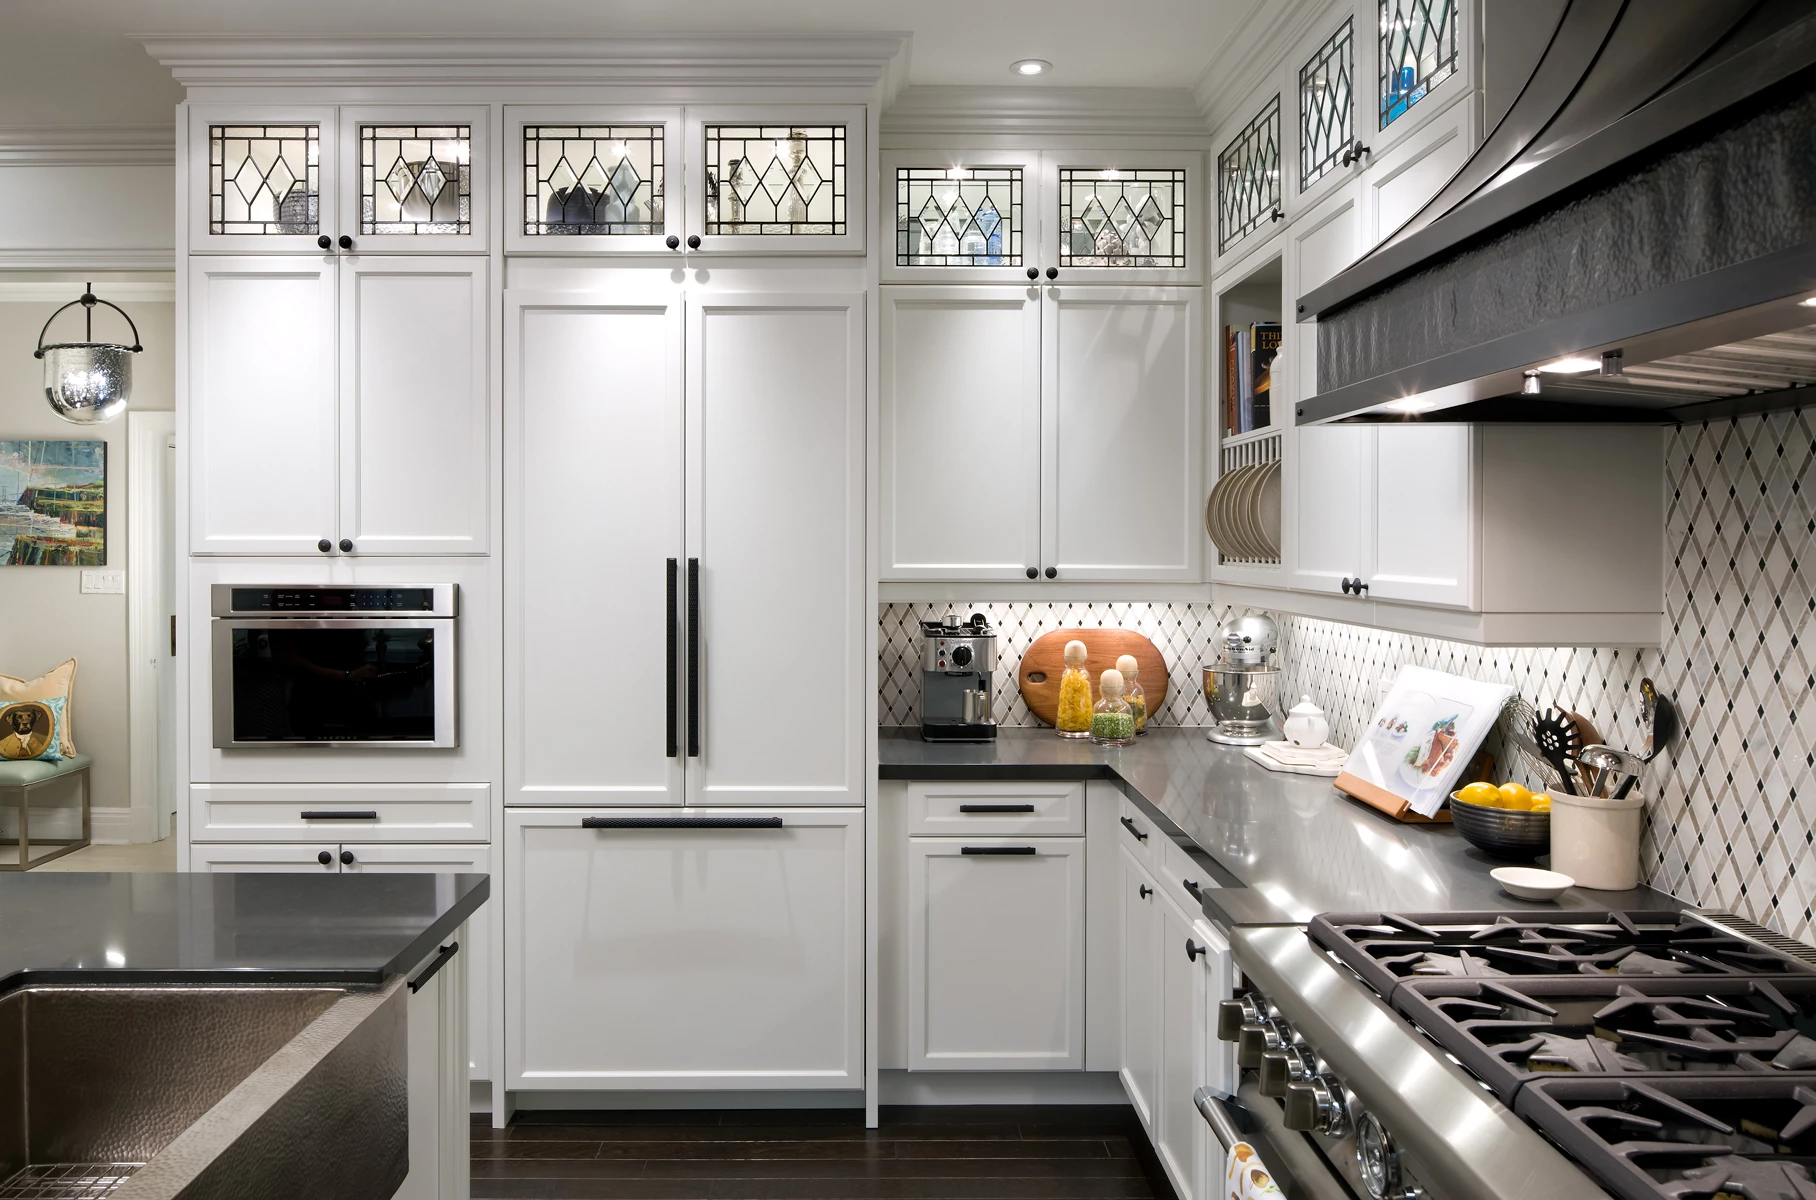 Thermador - One - Two - Free - Get Free Appliances - Save up to $8777